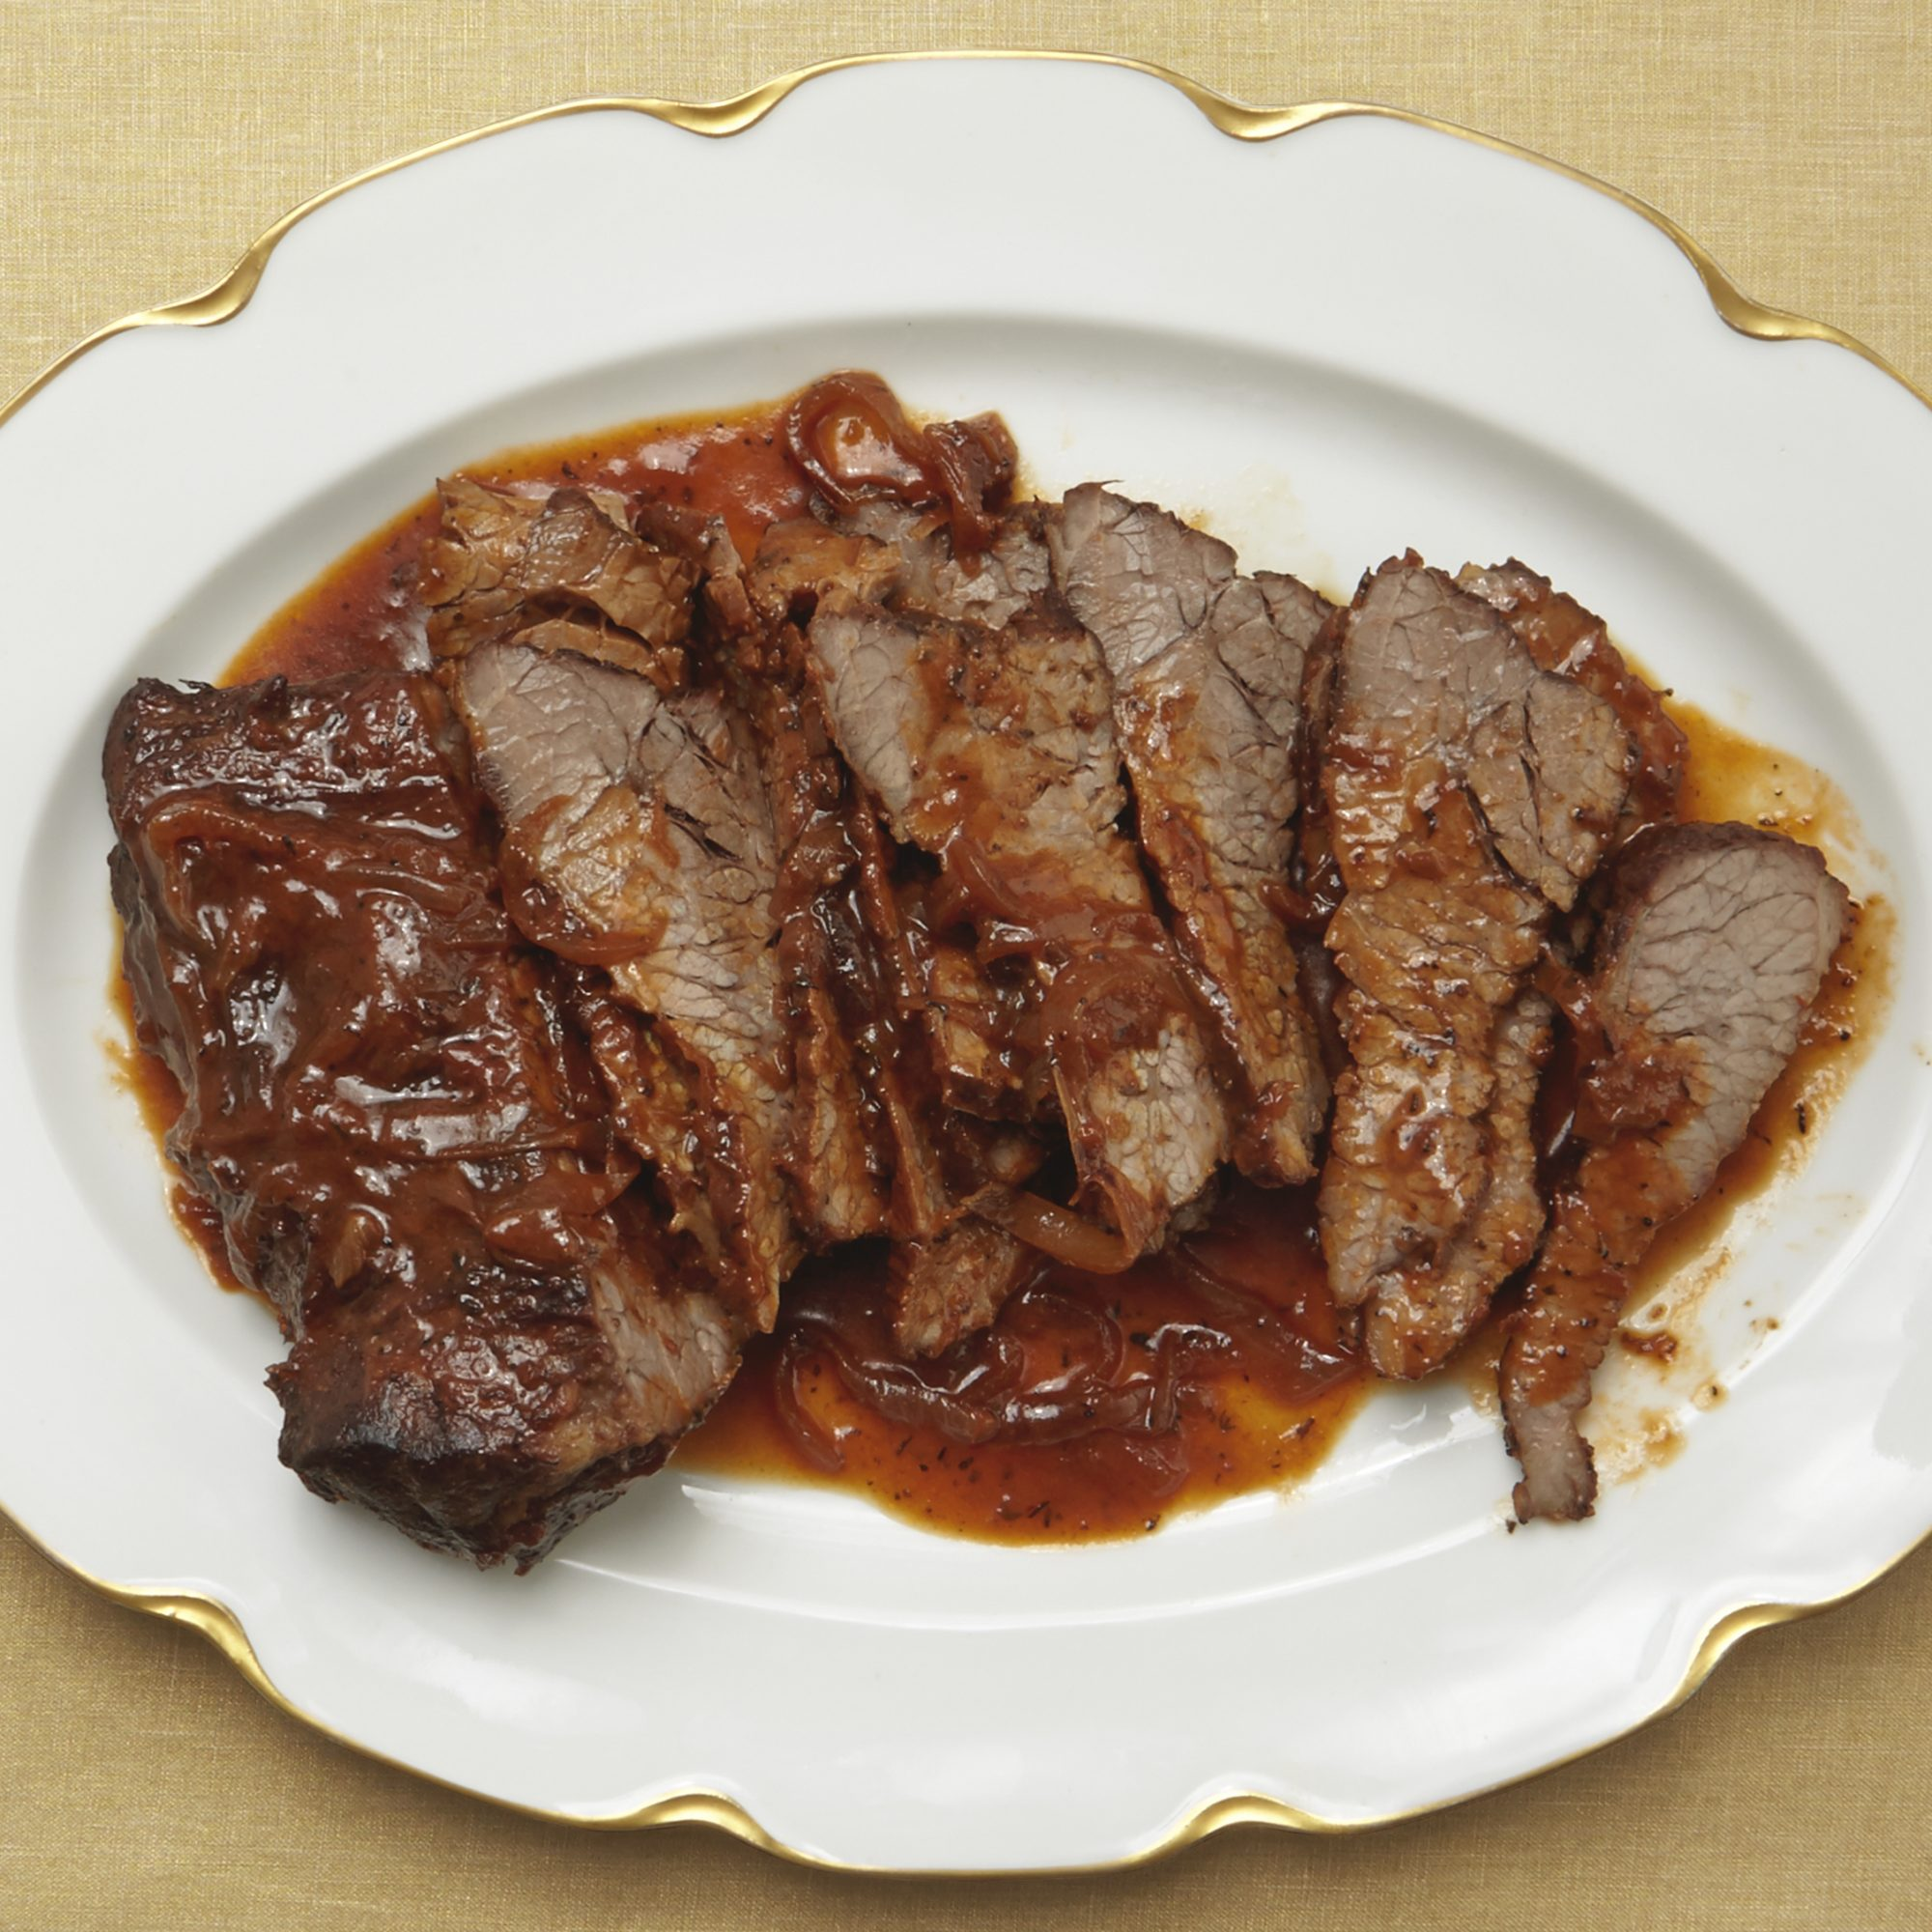 beef brisket on a white plate